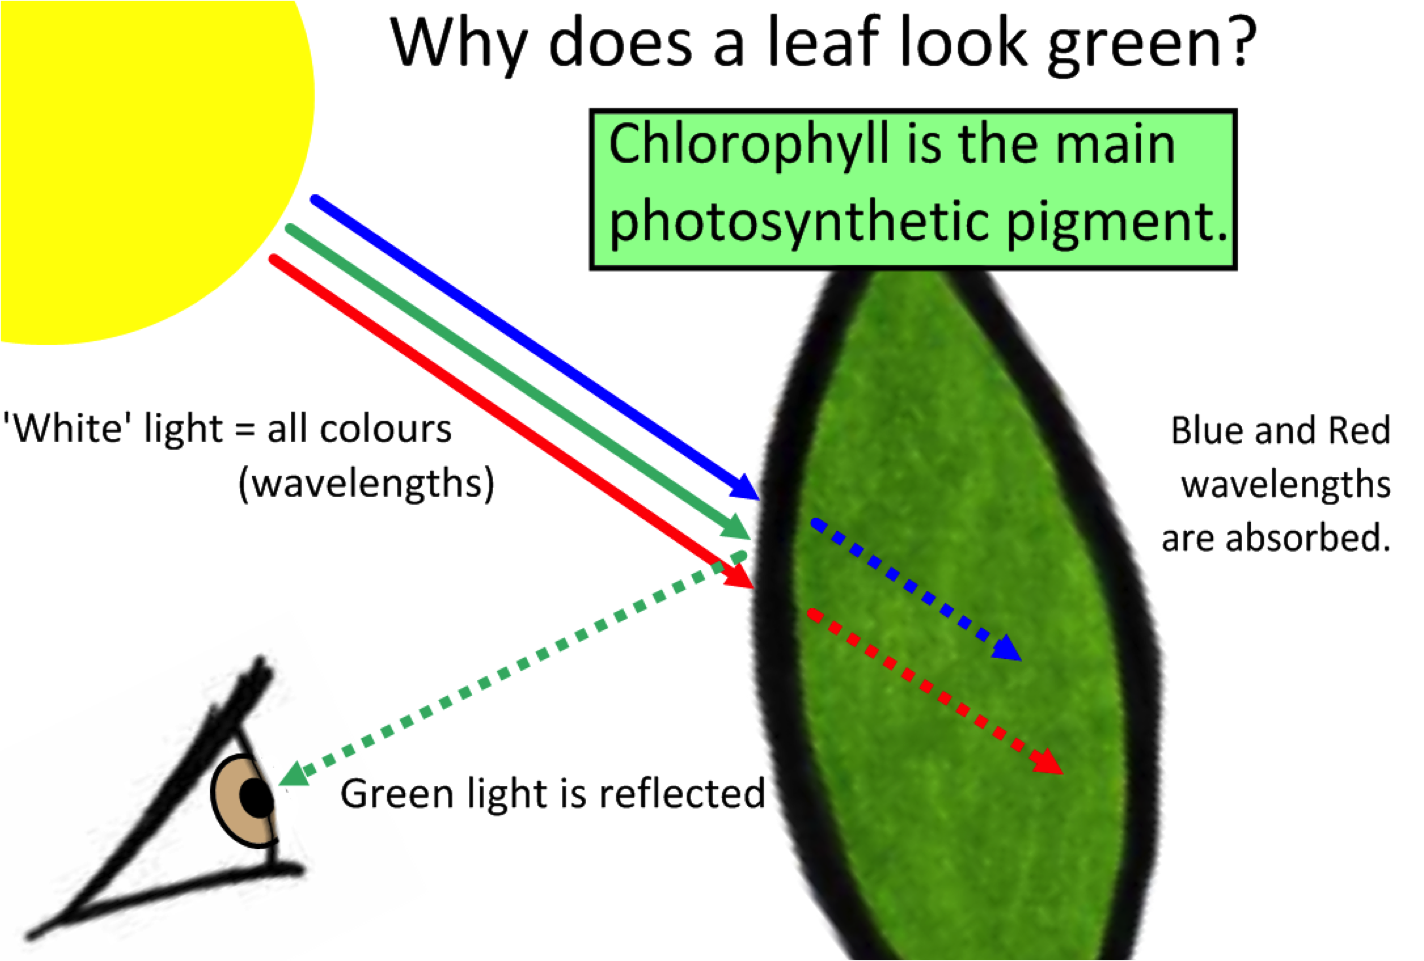 What is the Main photosynthetic pigment of green plants